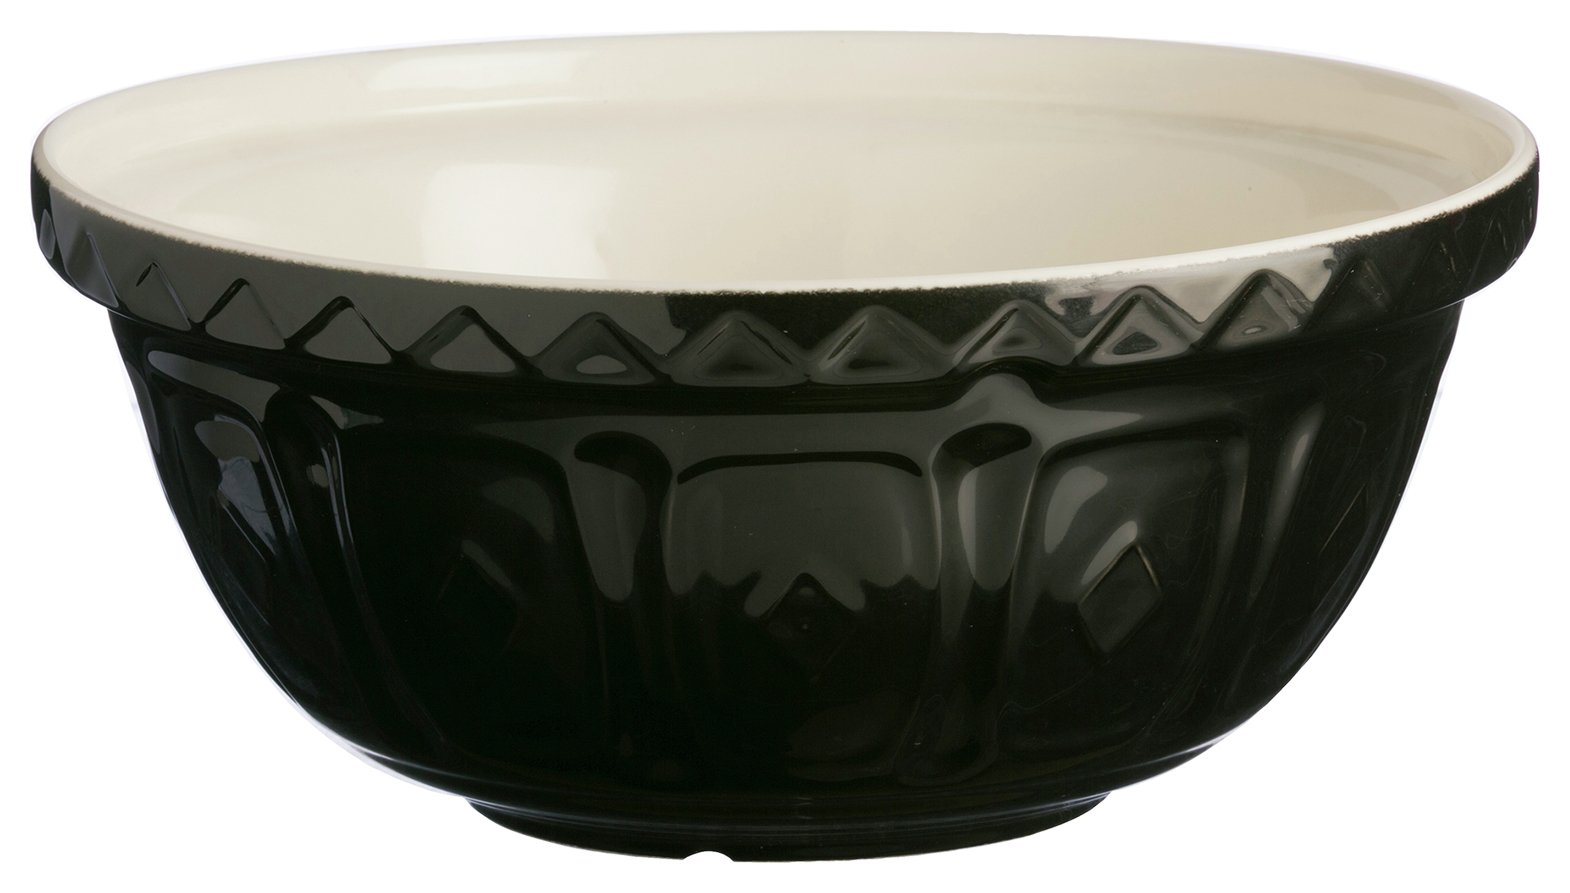 Image of Mason Cash 29cm Black Mixing Bowl.